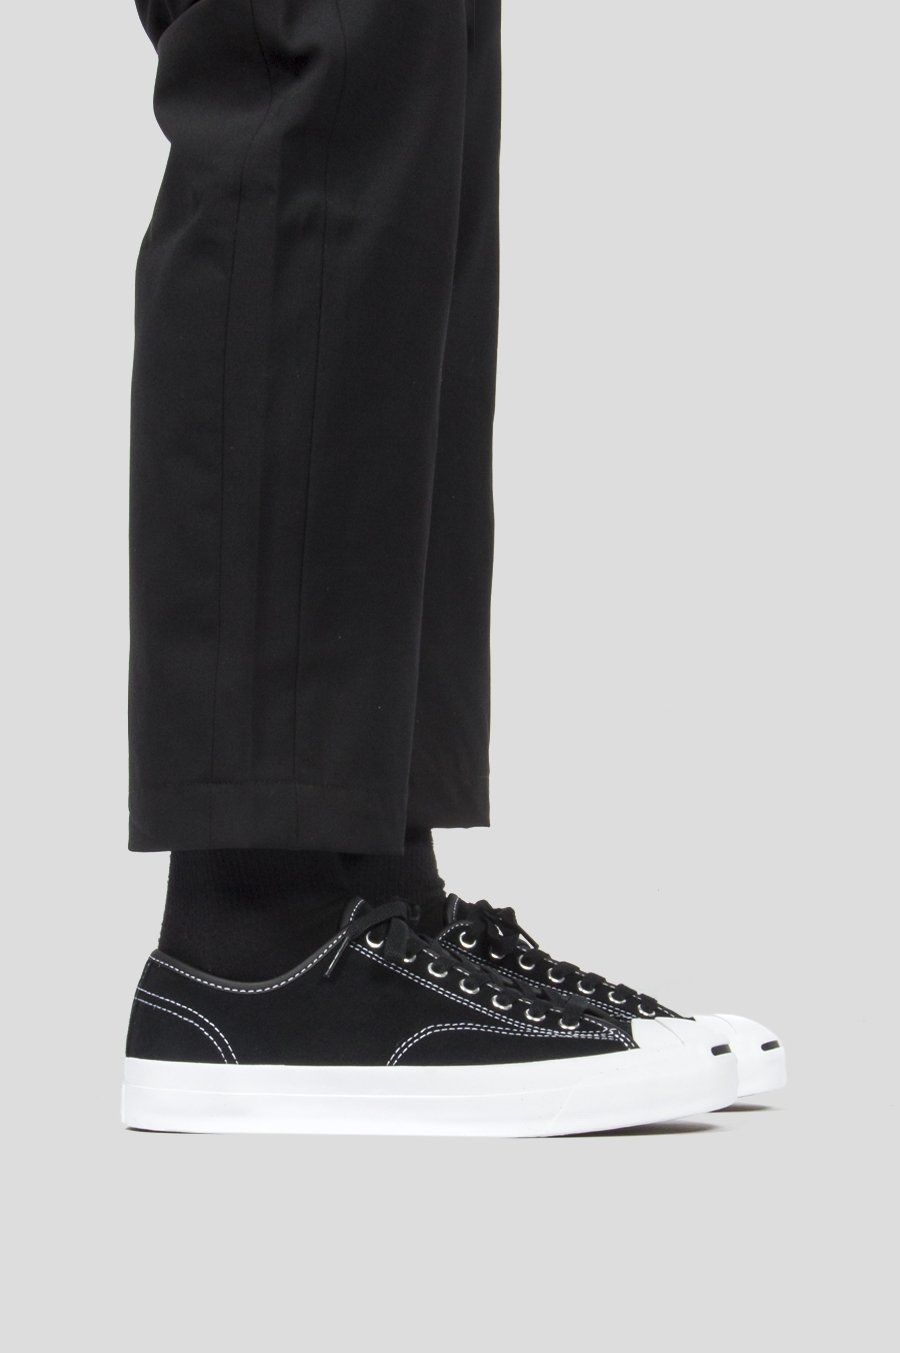 CONVERSE JACK PURCELL PRO OX BLACK